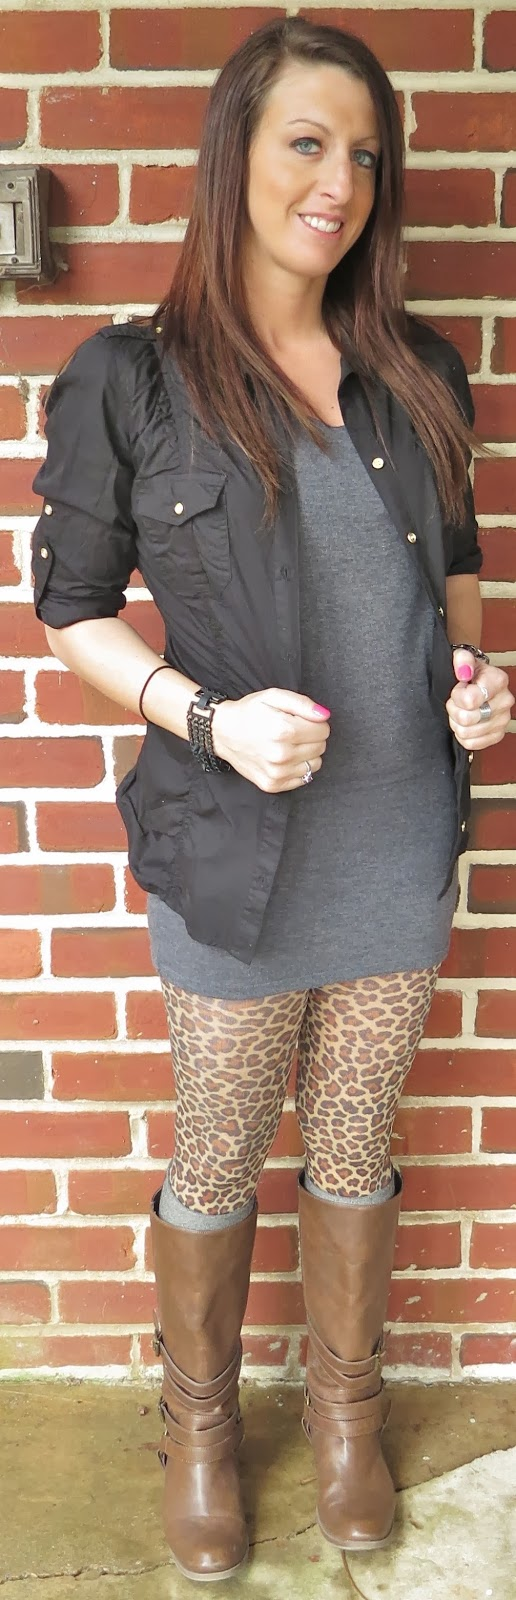 Boots, Fashion, leopard brint, ootd, Outfit Ideas, outfit of the day, Outfits, winter fashion,